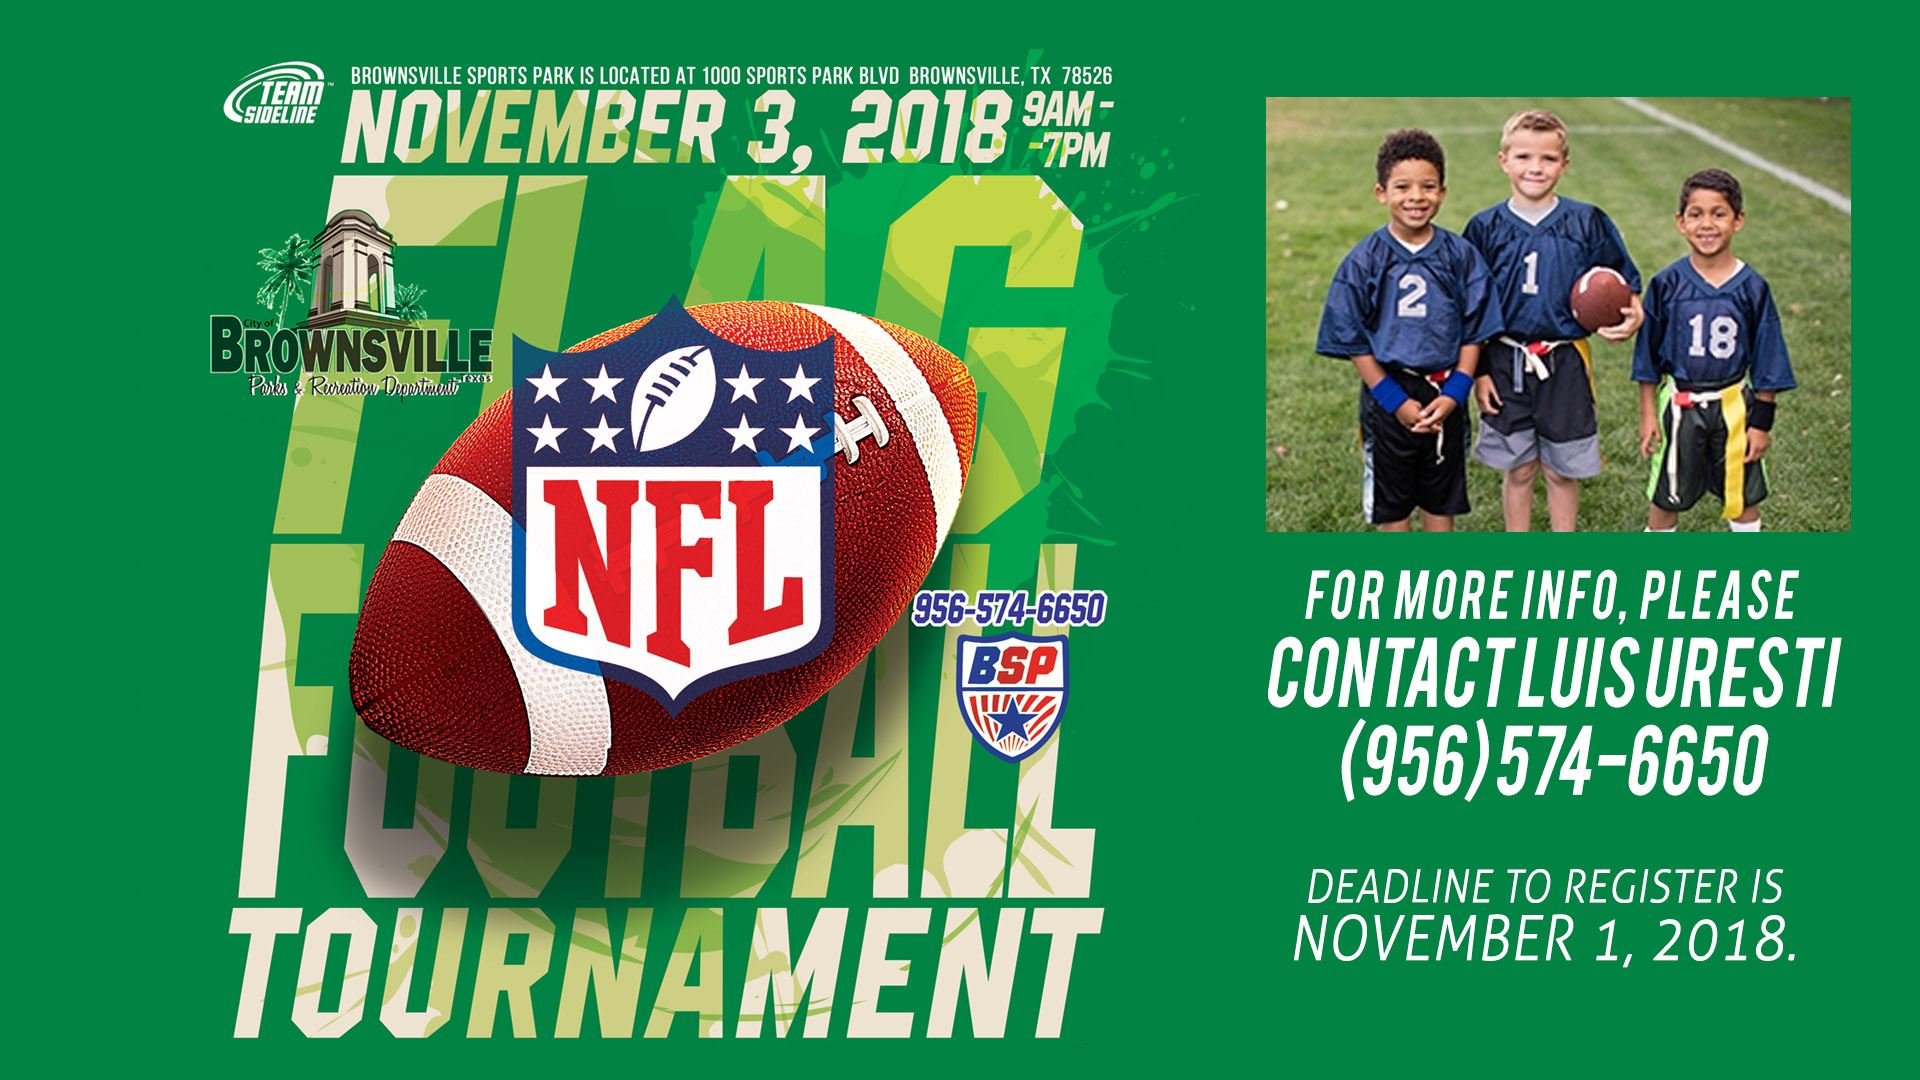 event art for football